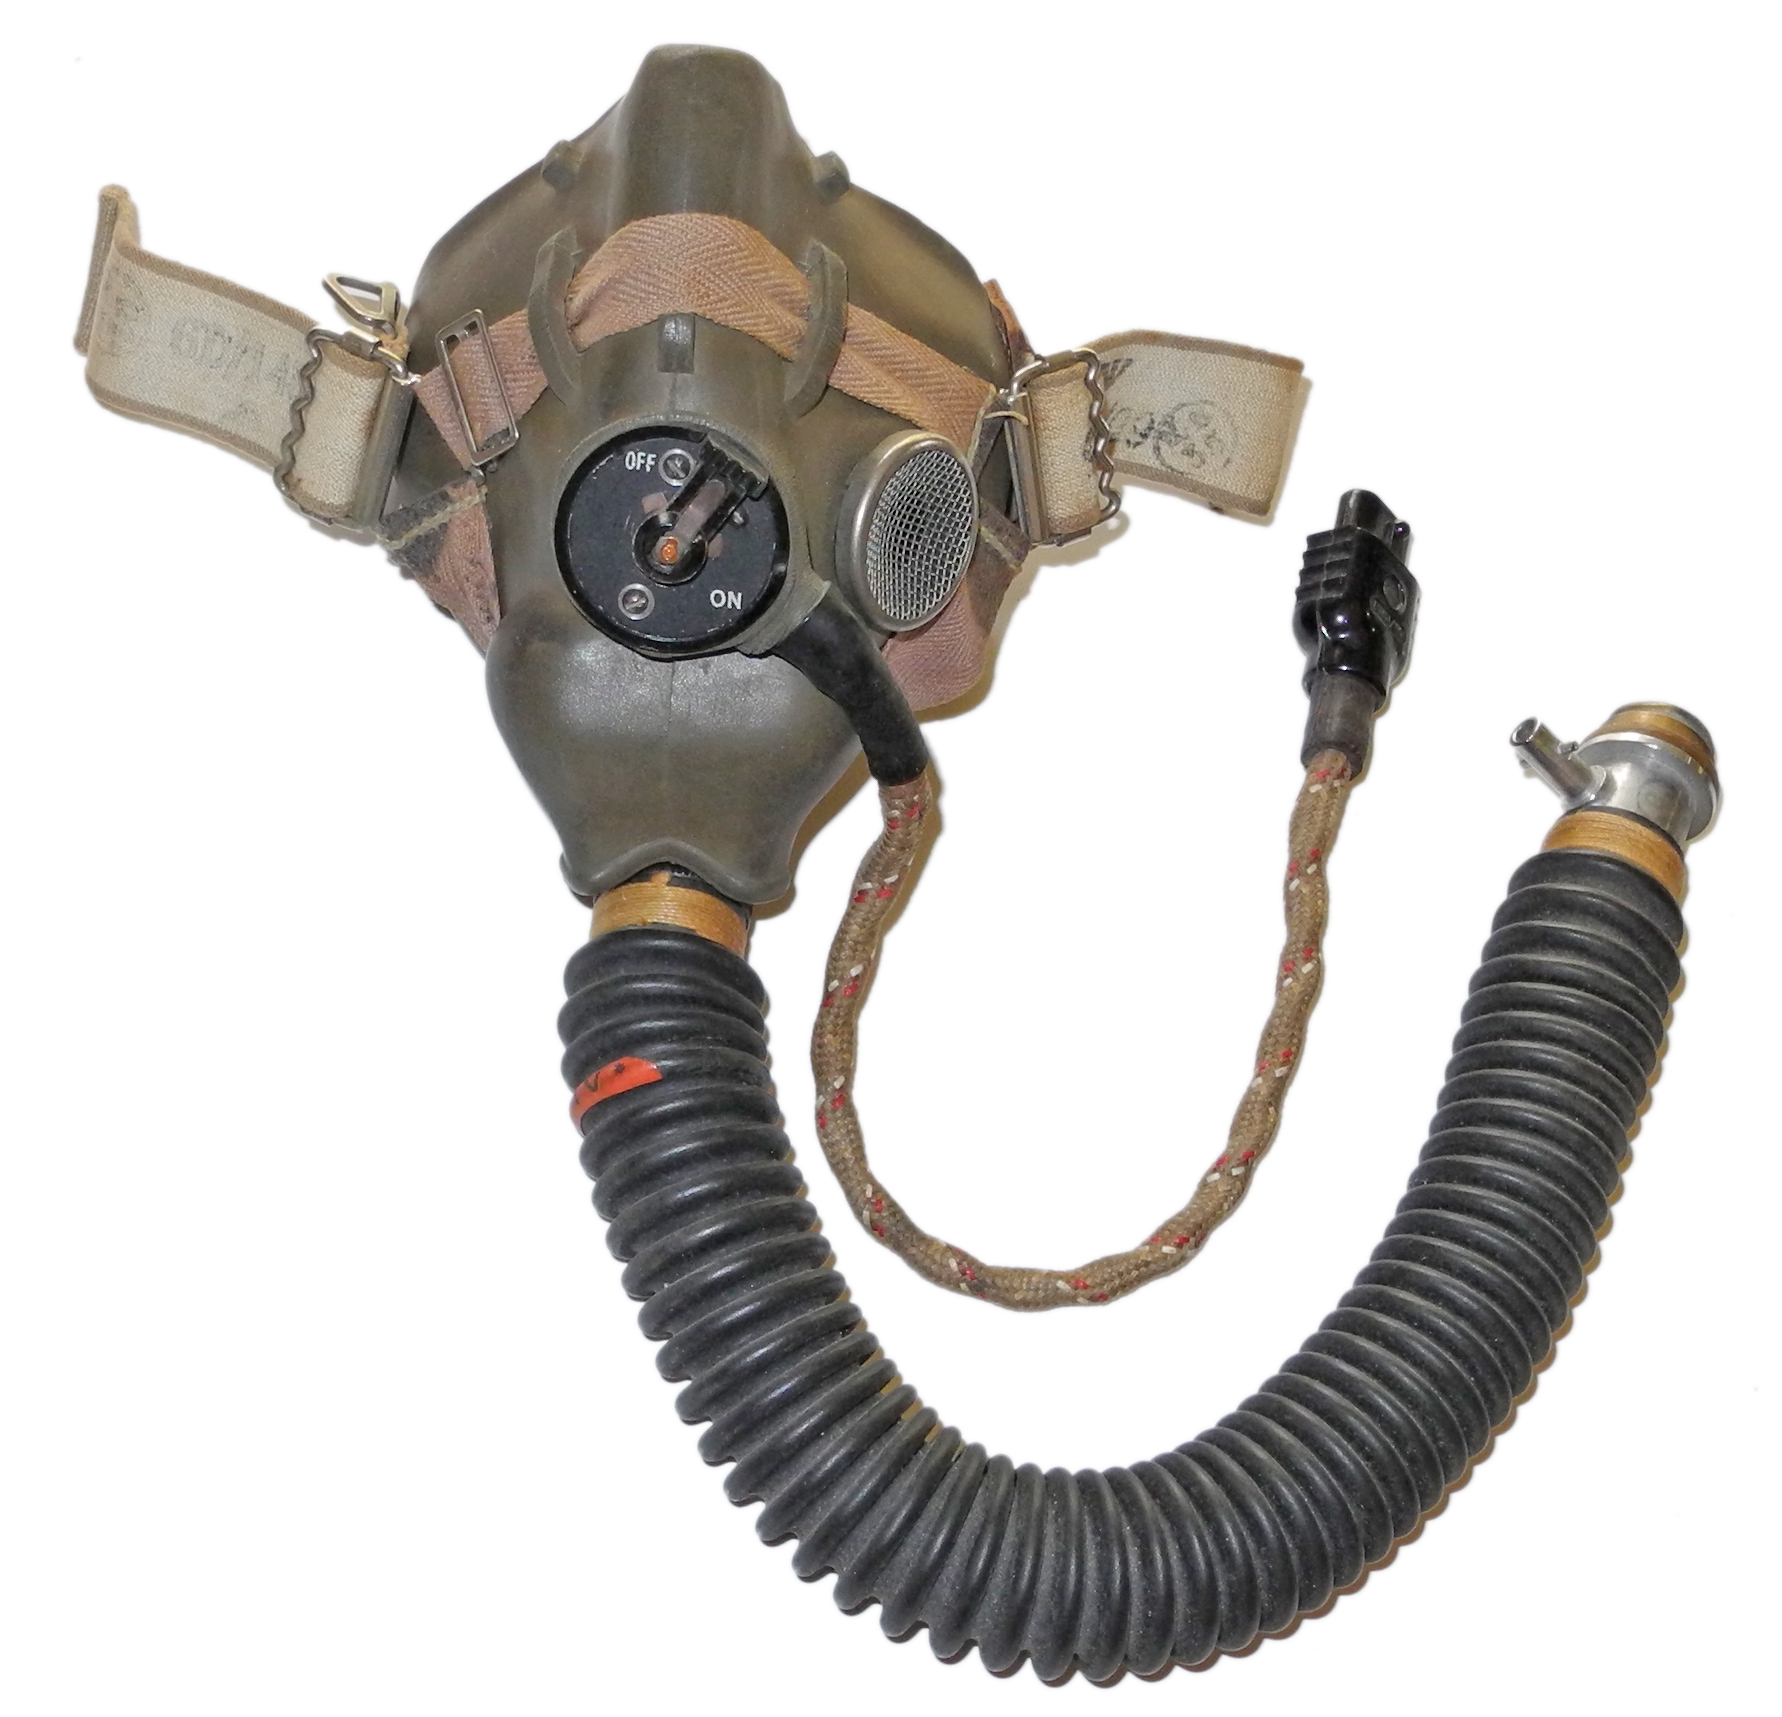 RAF Type H mask with hose dated 1952